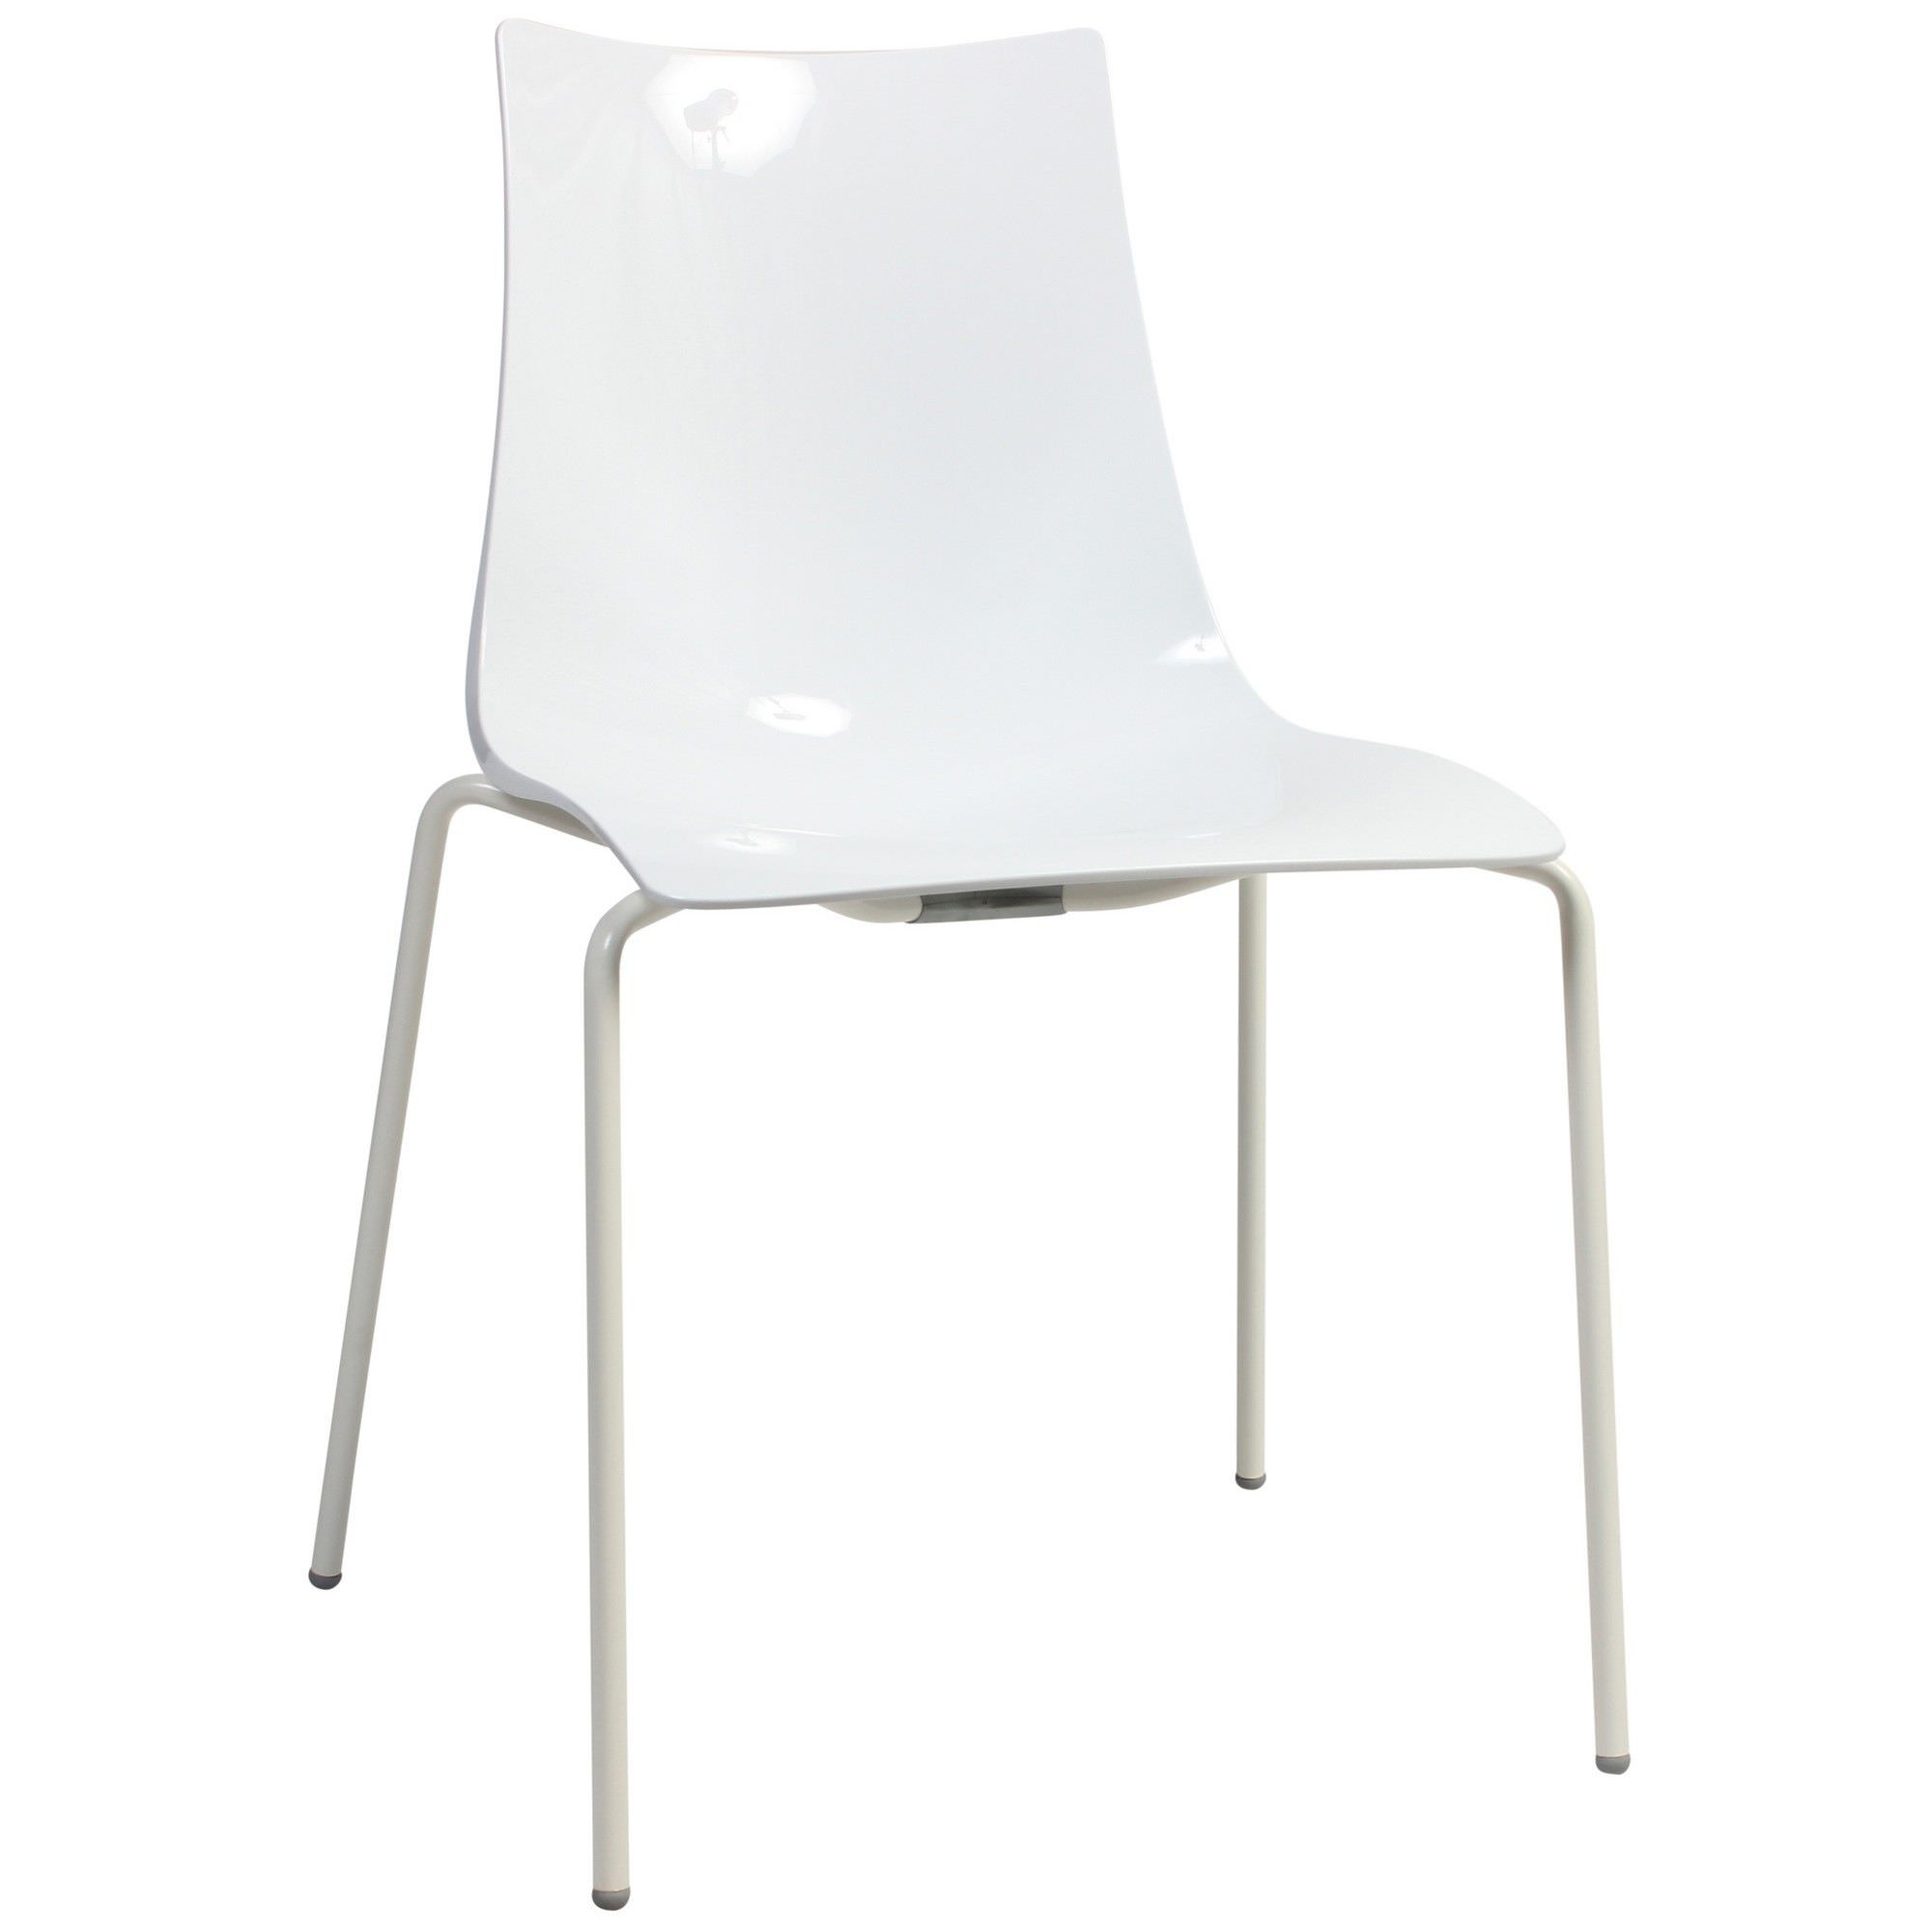 Zebra Italian Made Commercial Grade Indoor/Outdoor Dining Chair, Metal Leg, White